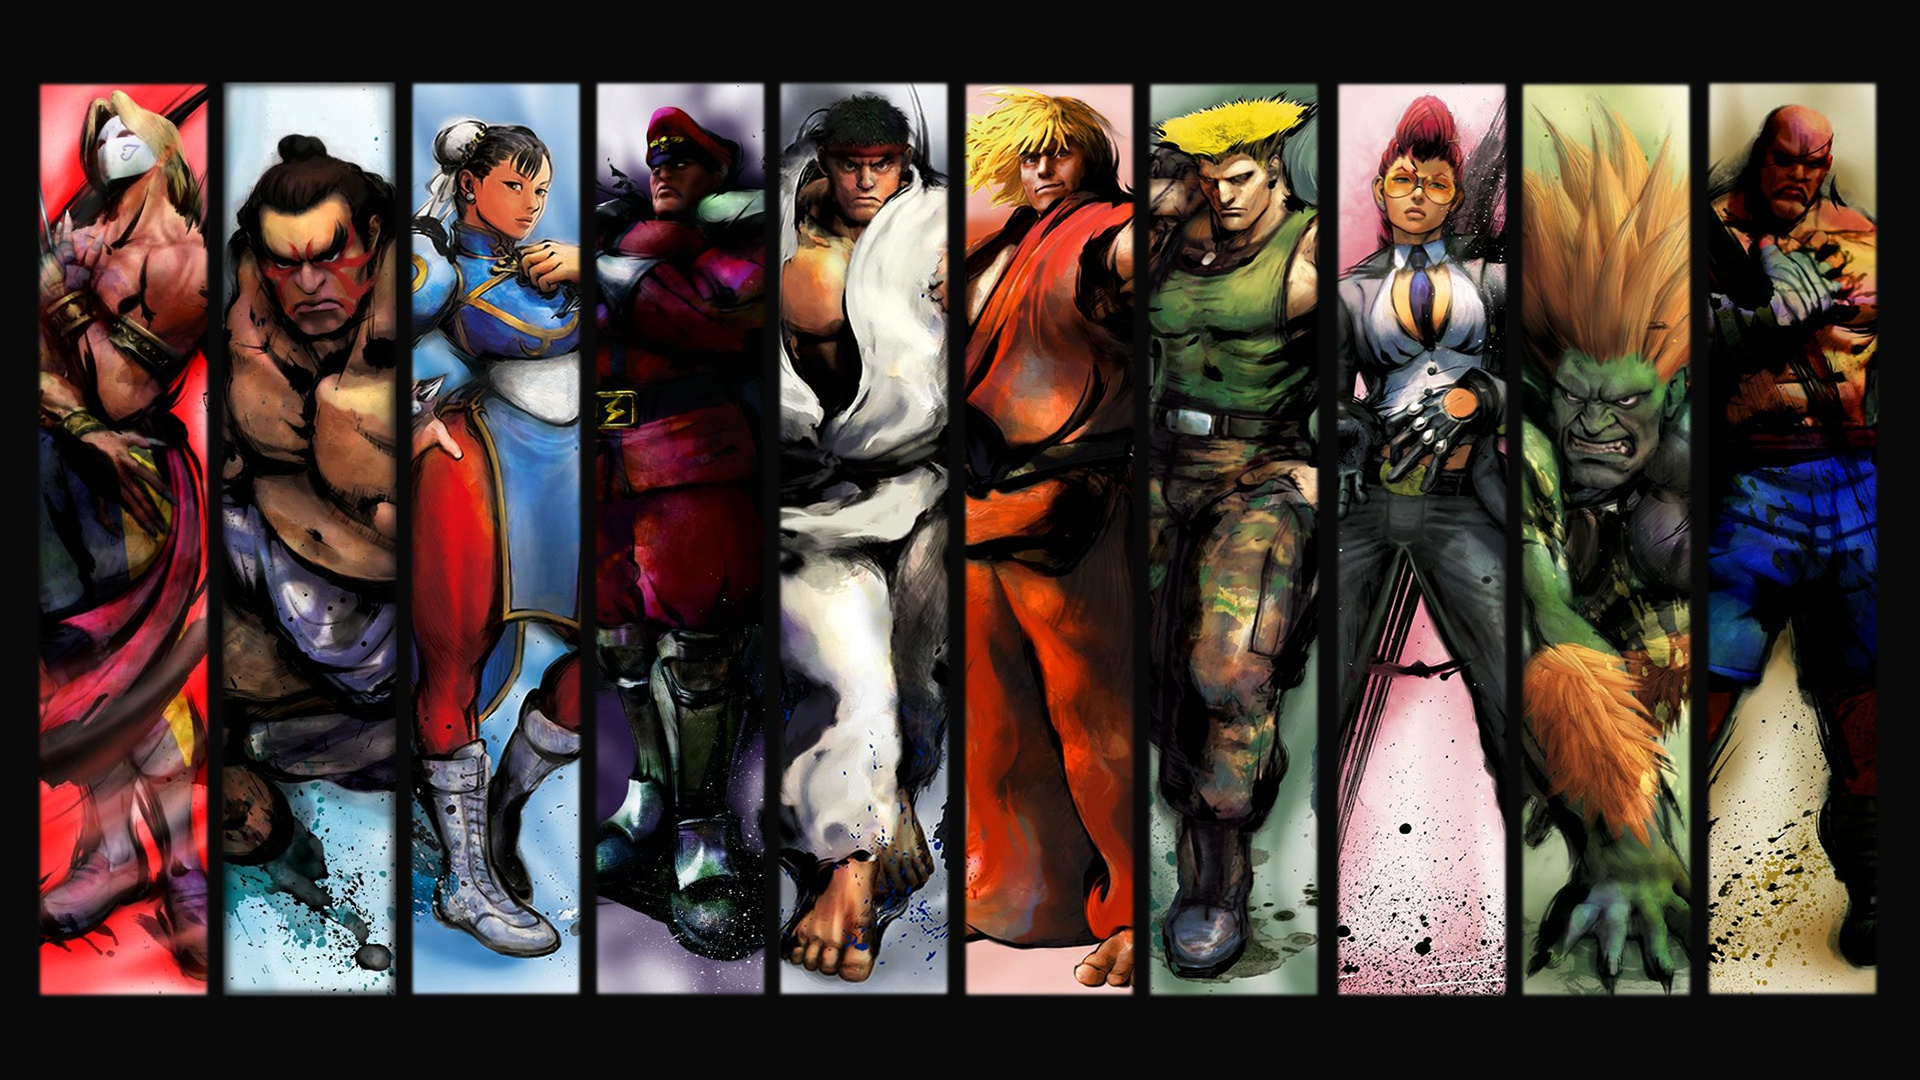 Amazing Street Fighter Pictures & Backgrounds